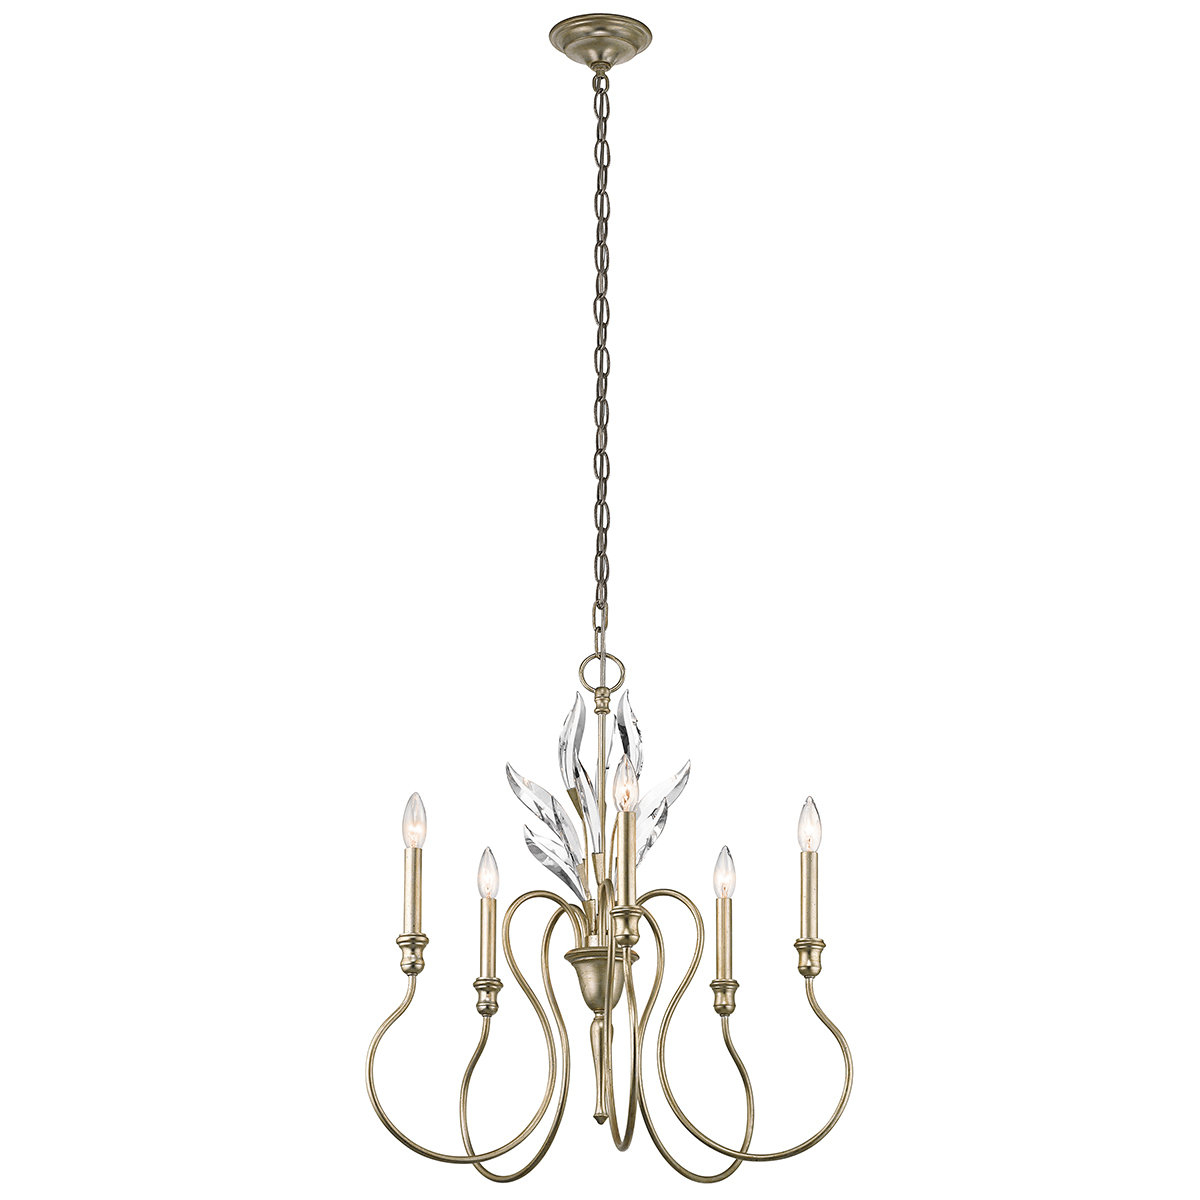 Corneau 5 Light Chandeliers Throughout Famous Madison Lane 5 Light Chandelier (View 8 of 25)